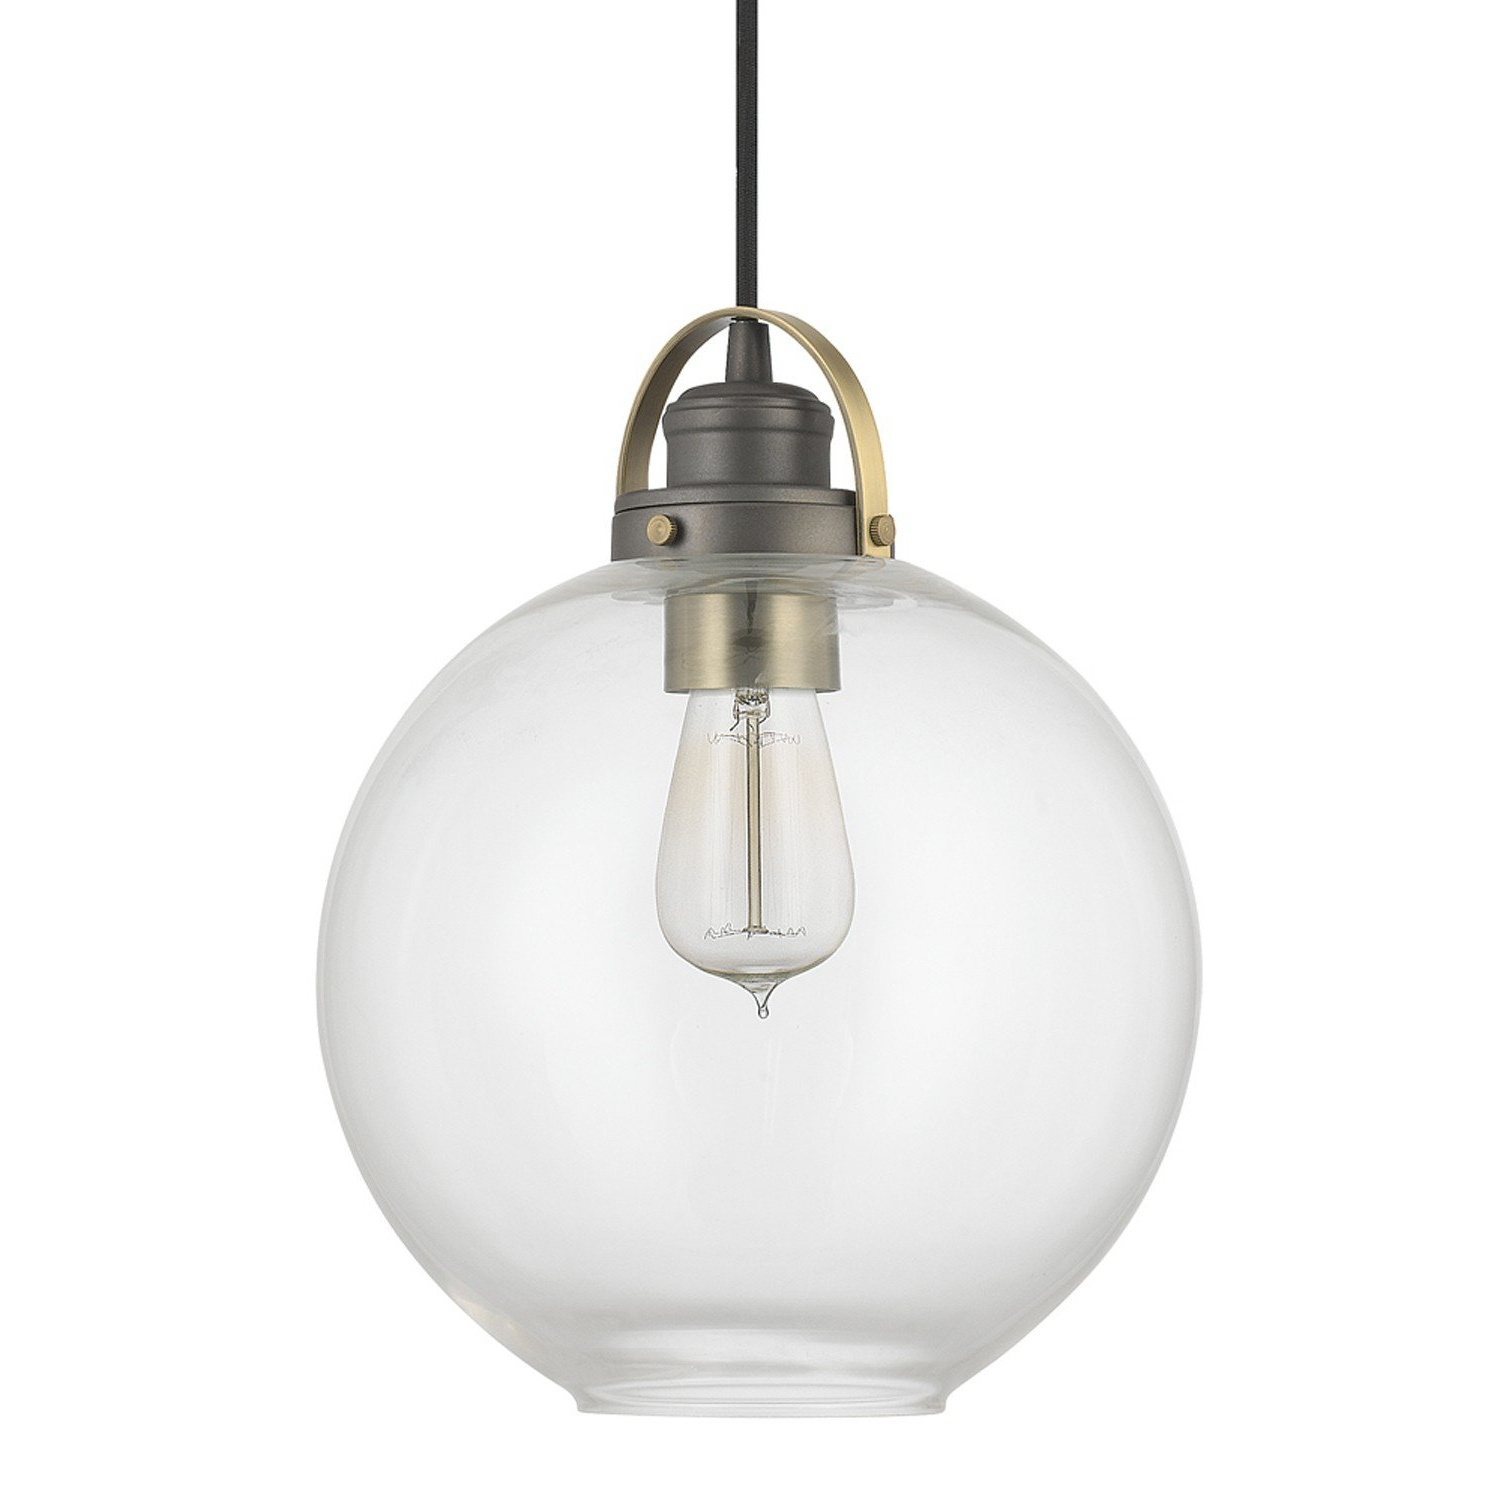 Widely Used Gehry 1 Light Single Globe Pendants Intended For Betsy 1 Light Single Globe Pendant (View 7 of 25)